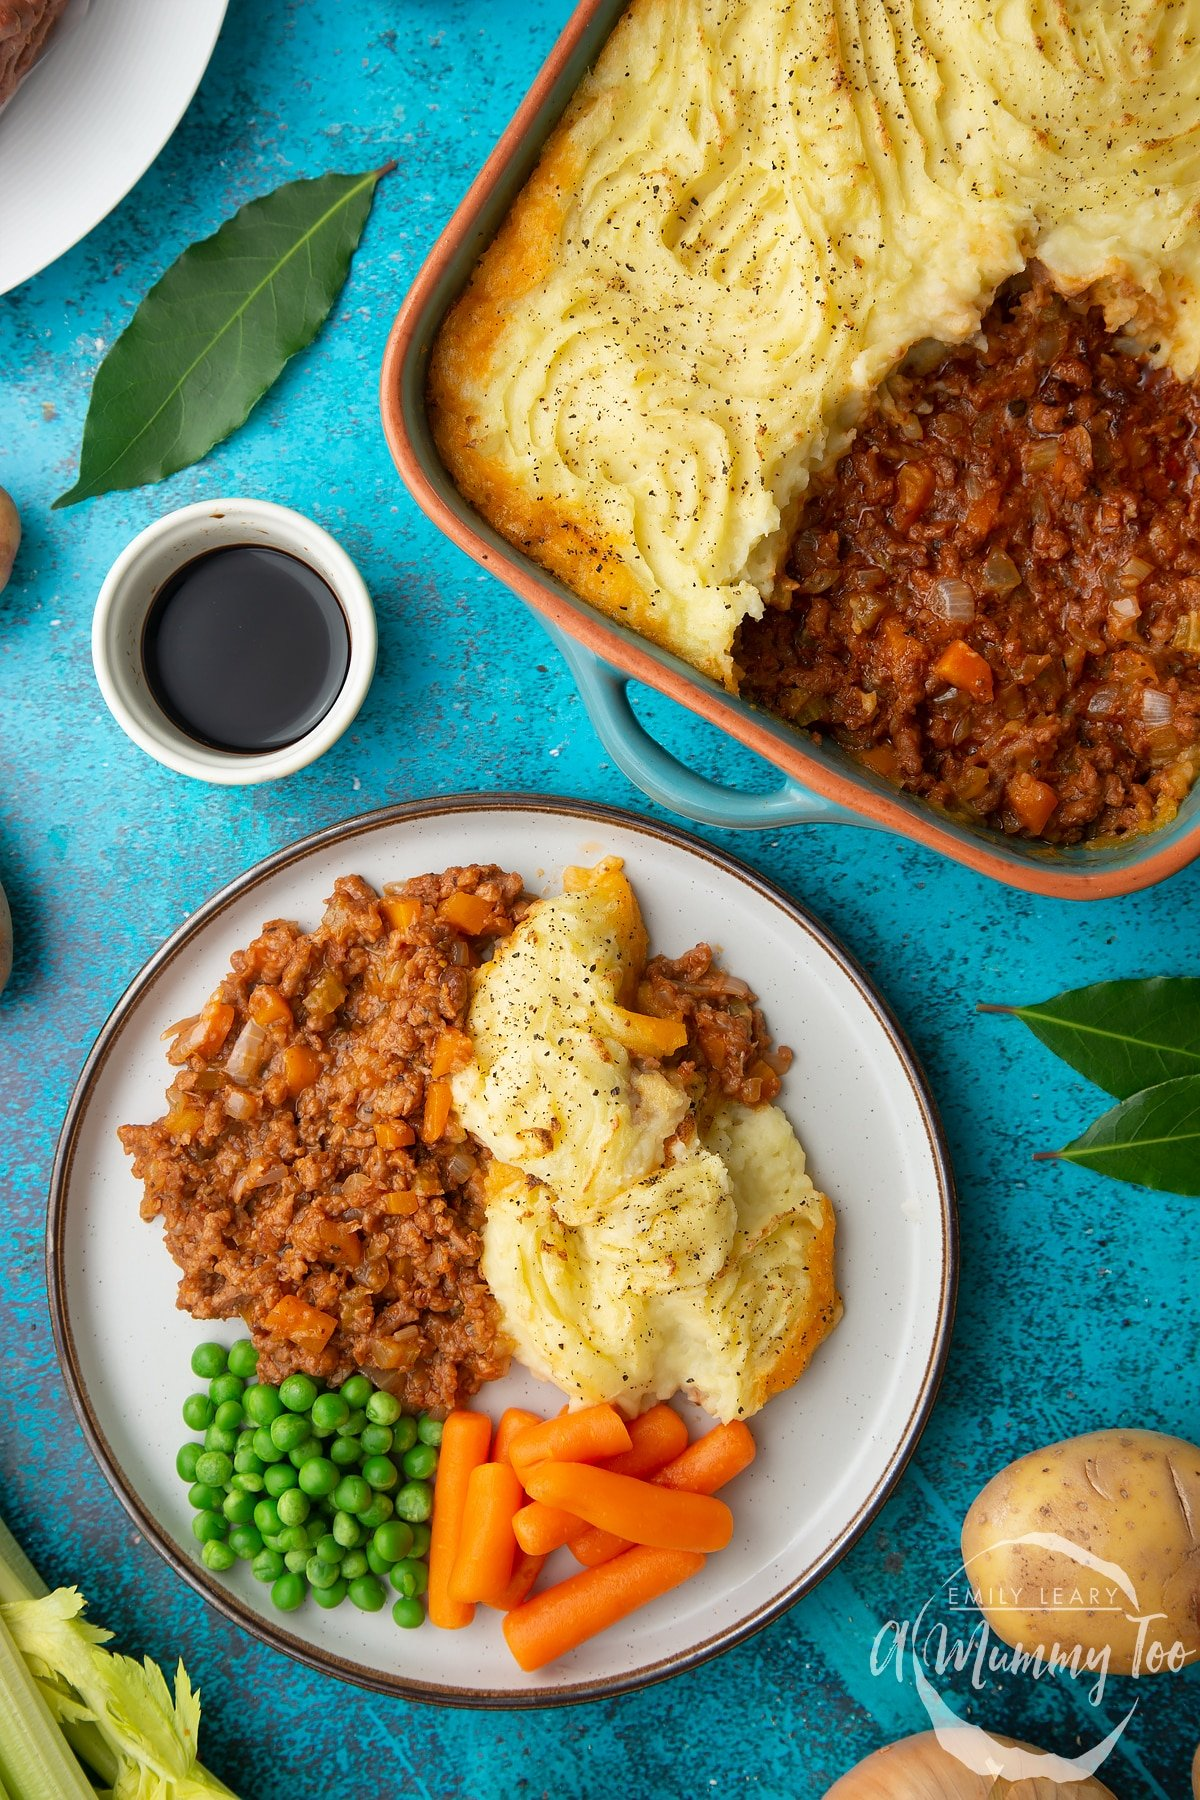 Vegan cottage pie served on a plate with peas and carrots. More pie is shown in a green roasting dish with an orange rim.